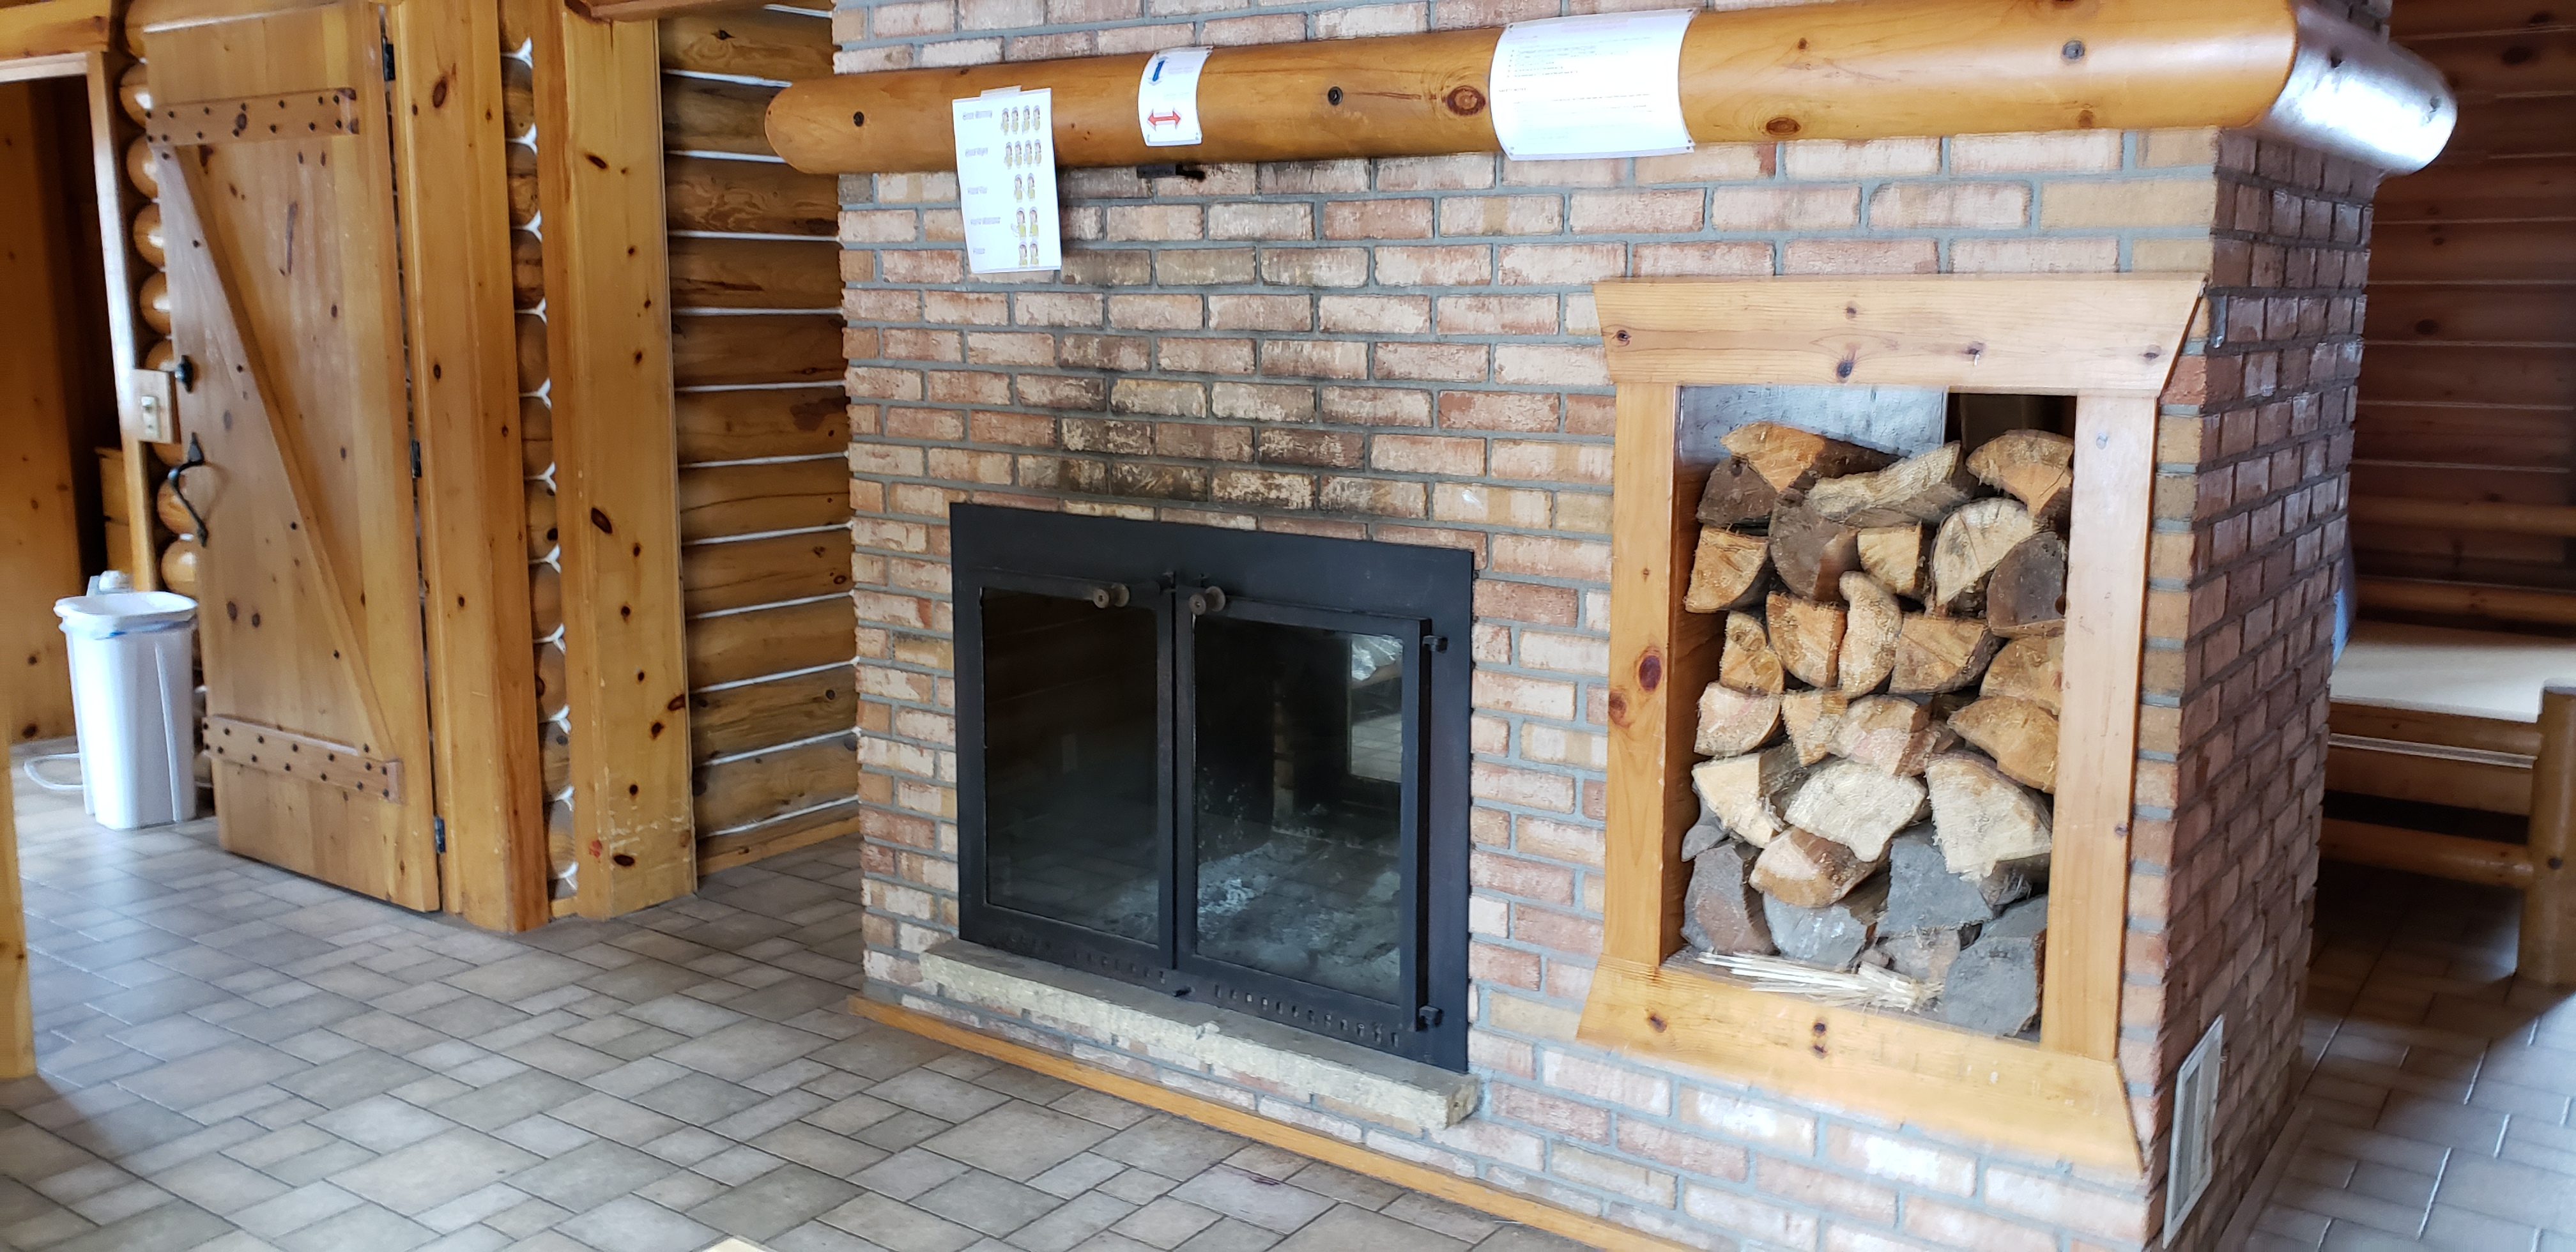 Photo of fireplace in camper cabin